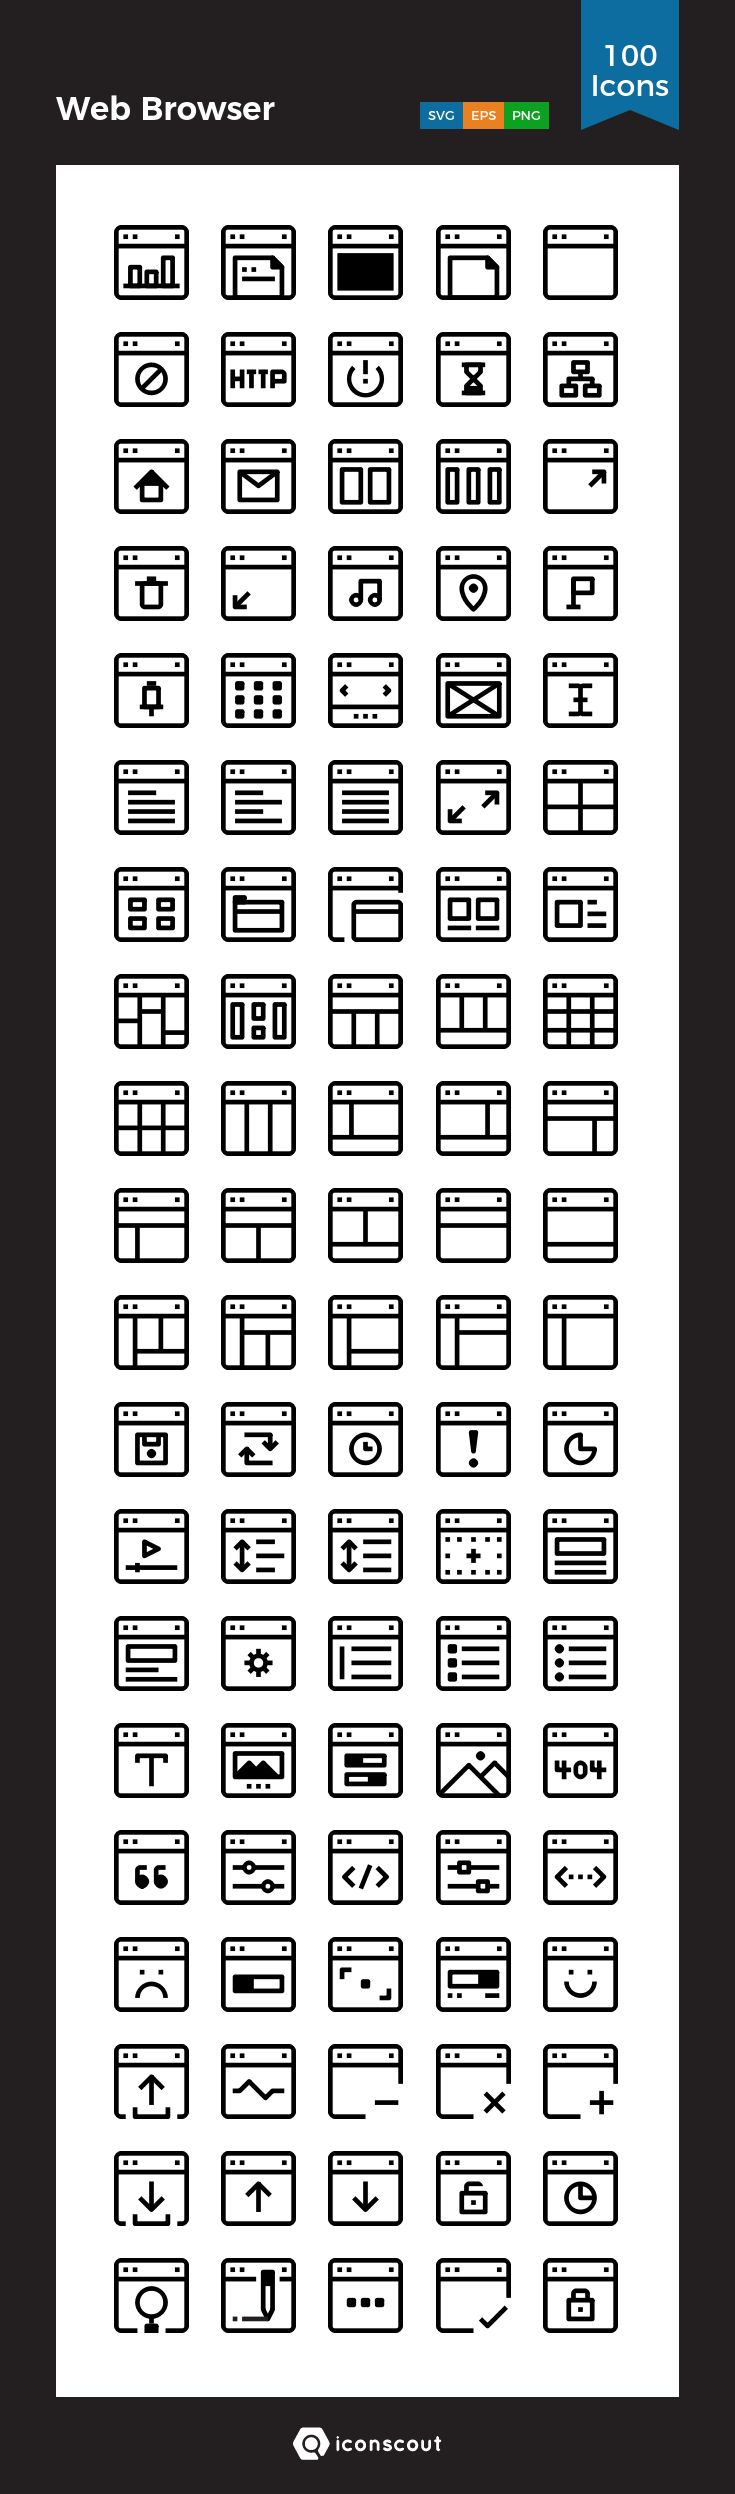 Web Browser   Icon Pack - 100 Line Icons